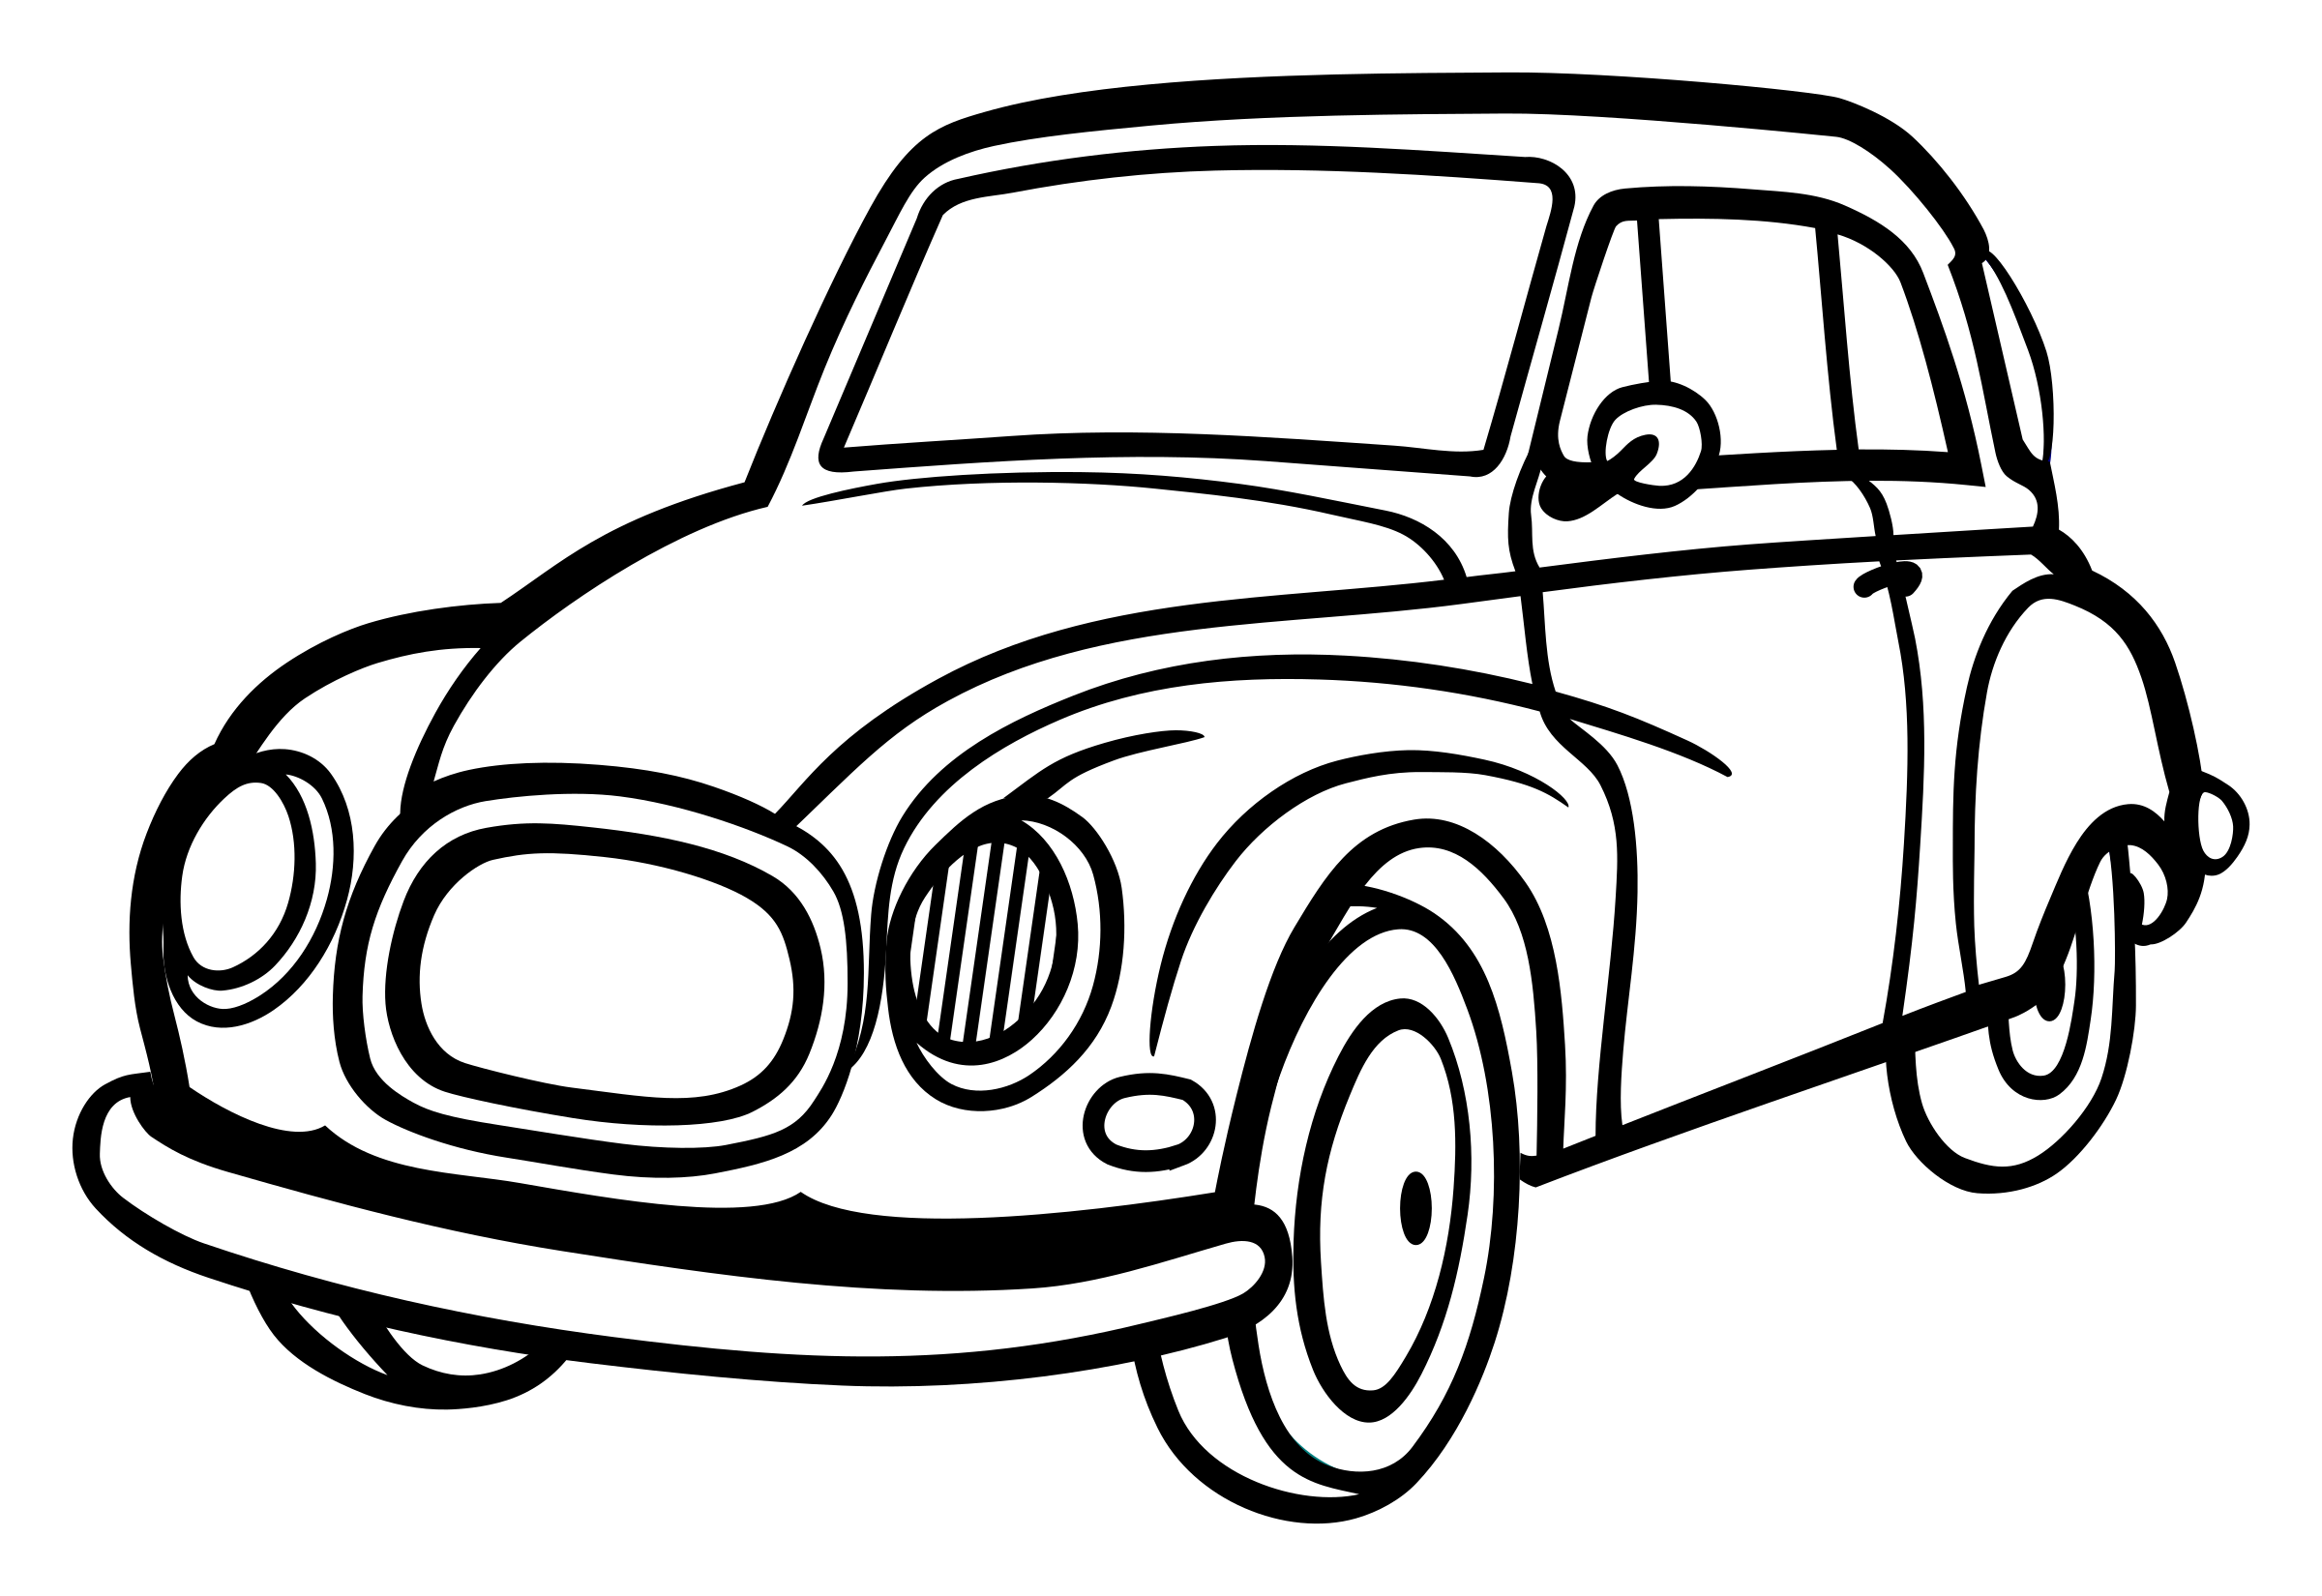 car - lineart by frankes